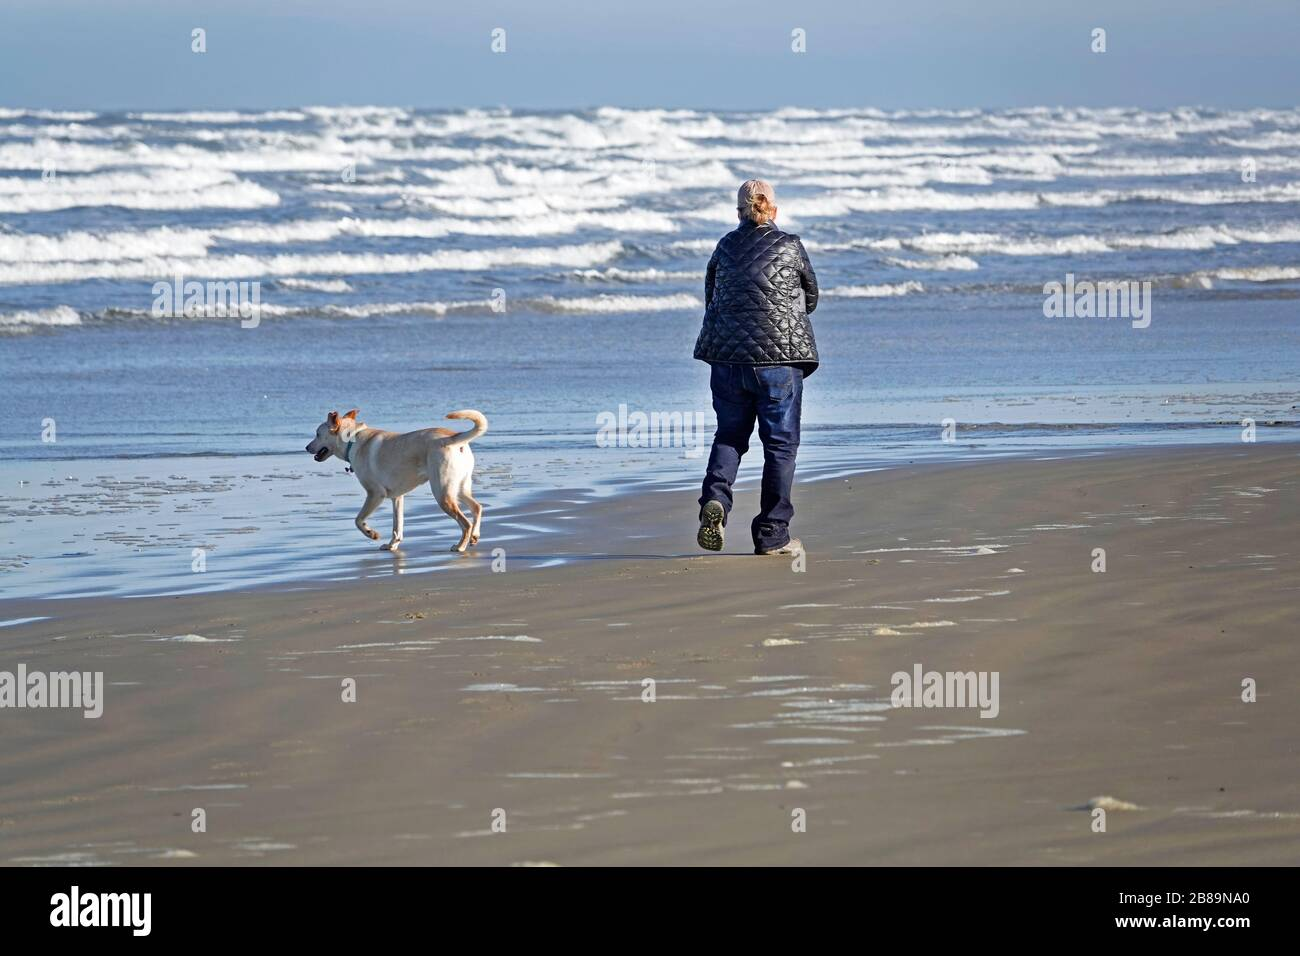 A woman walking her dog along a stretch of empty beach on the Oregon Pacific Coast near the town of Yachats, Oregon. Stock Photo